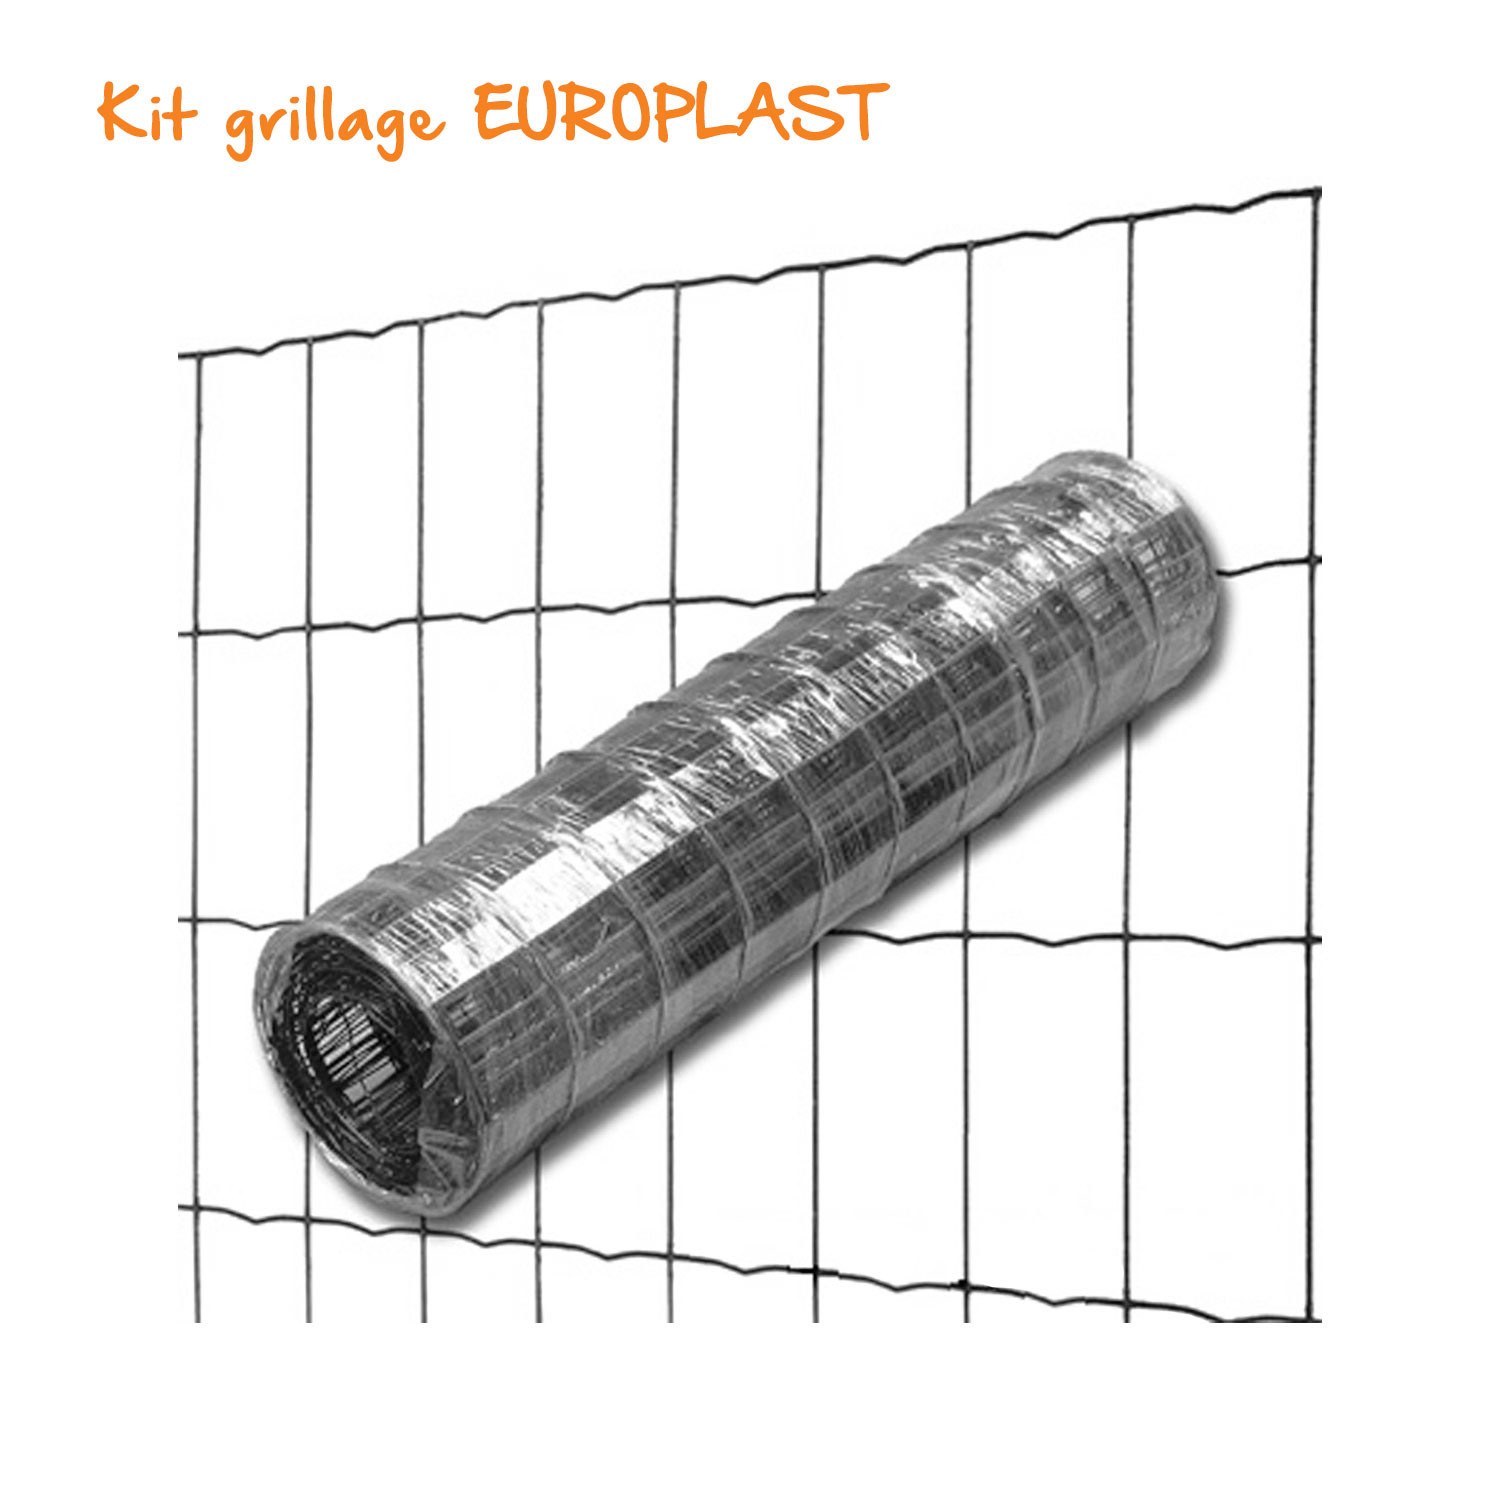 kit grillage soude europlast 100 x 50 mm o 2 1 mm lg 25 m gris anthracite